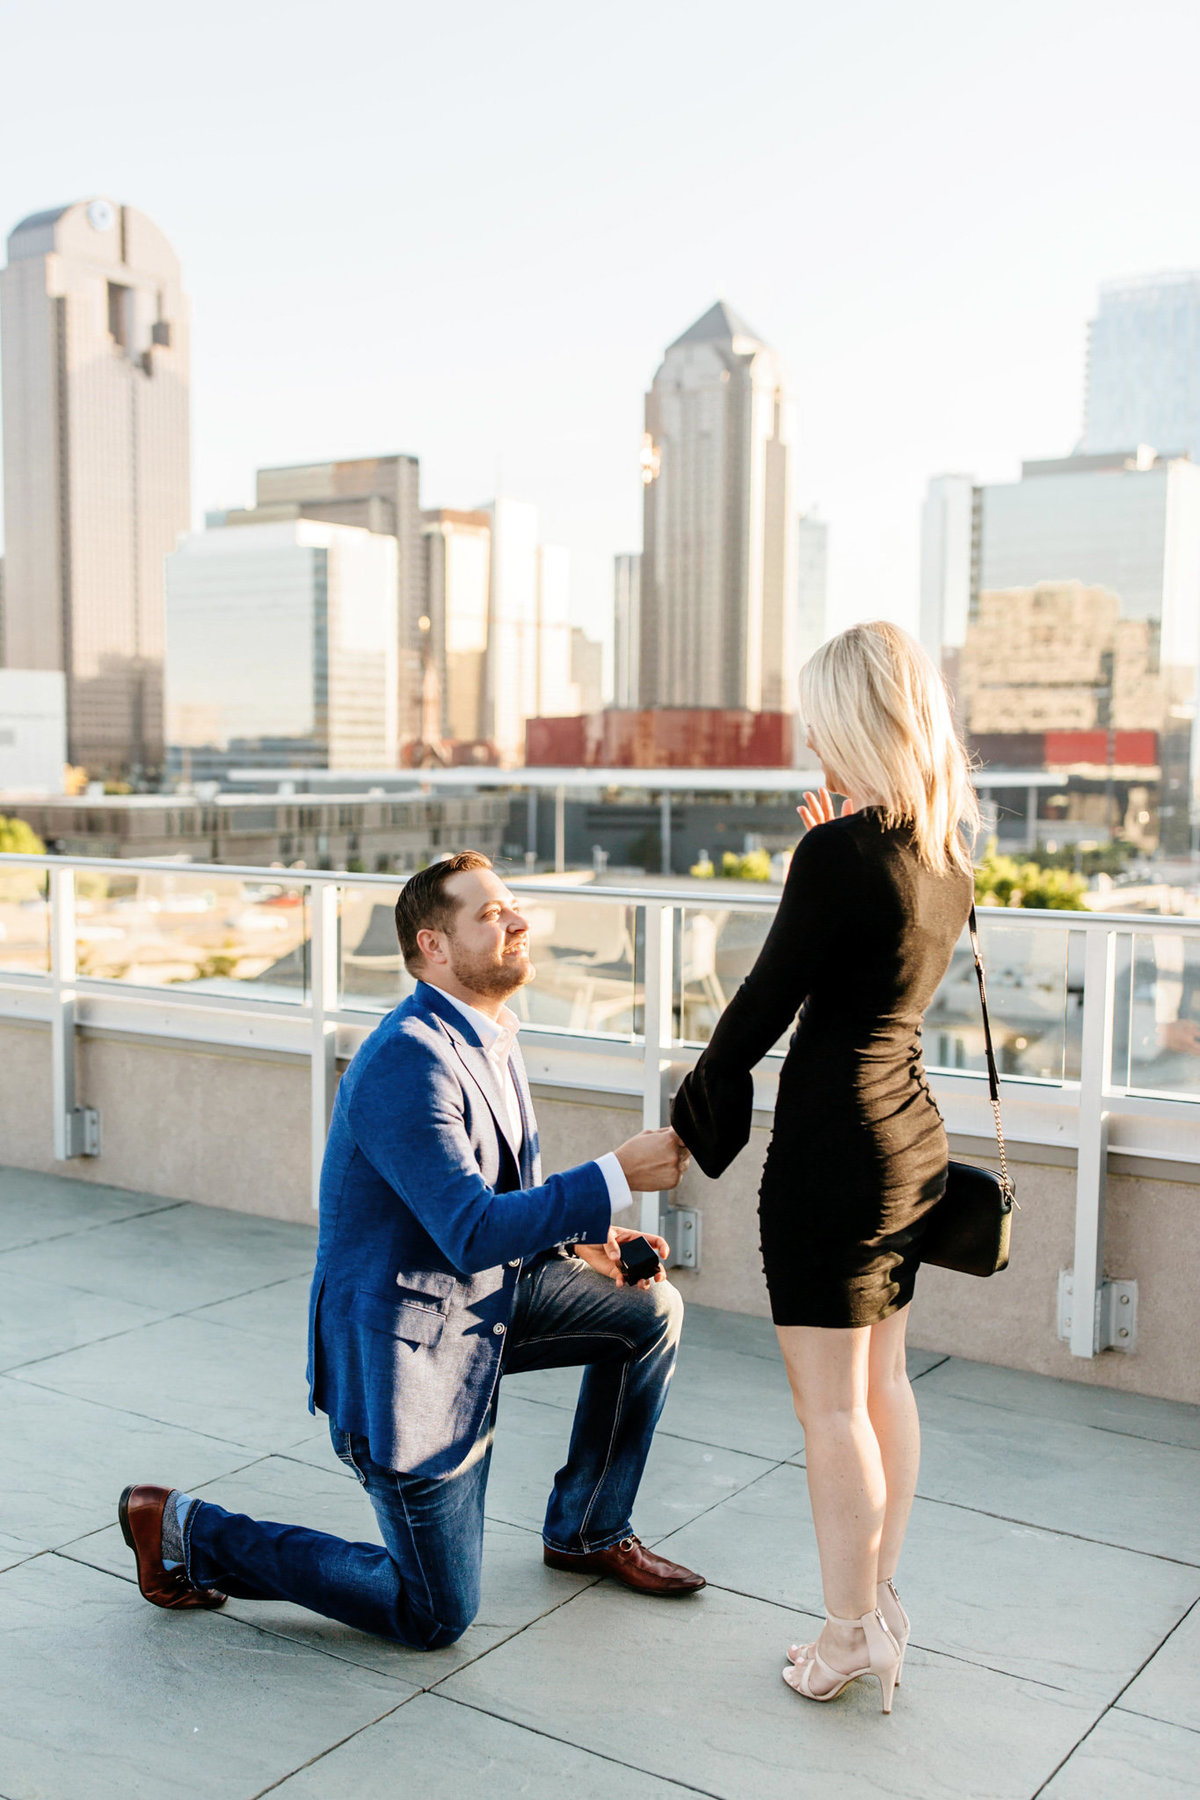 Eric & Megan - Downtown Dallas Rooftop Proposal & Engagement Session-26